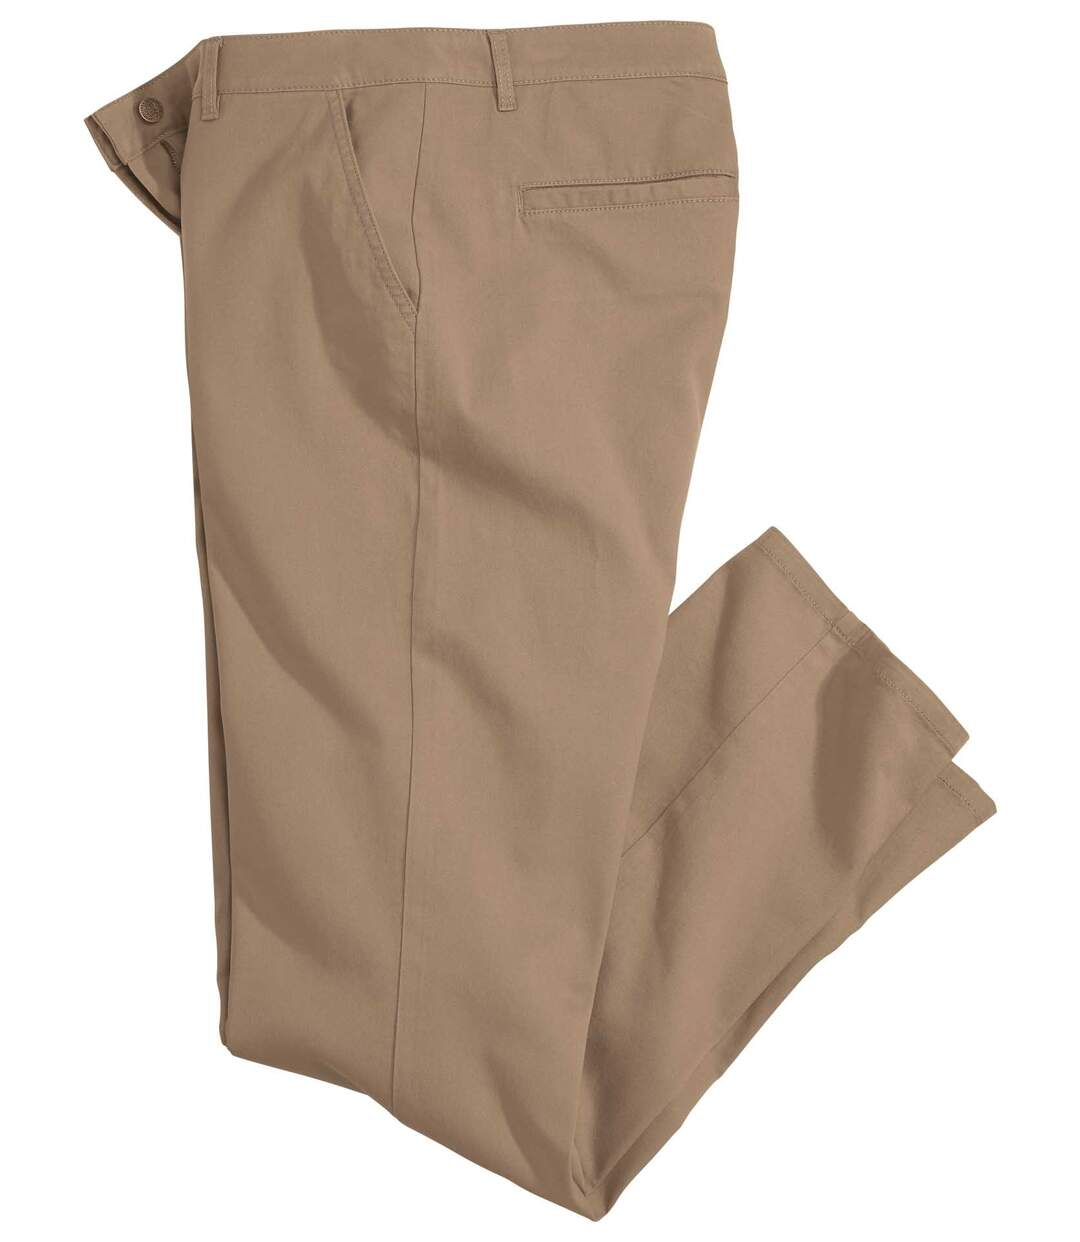 Beige stretch chino